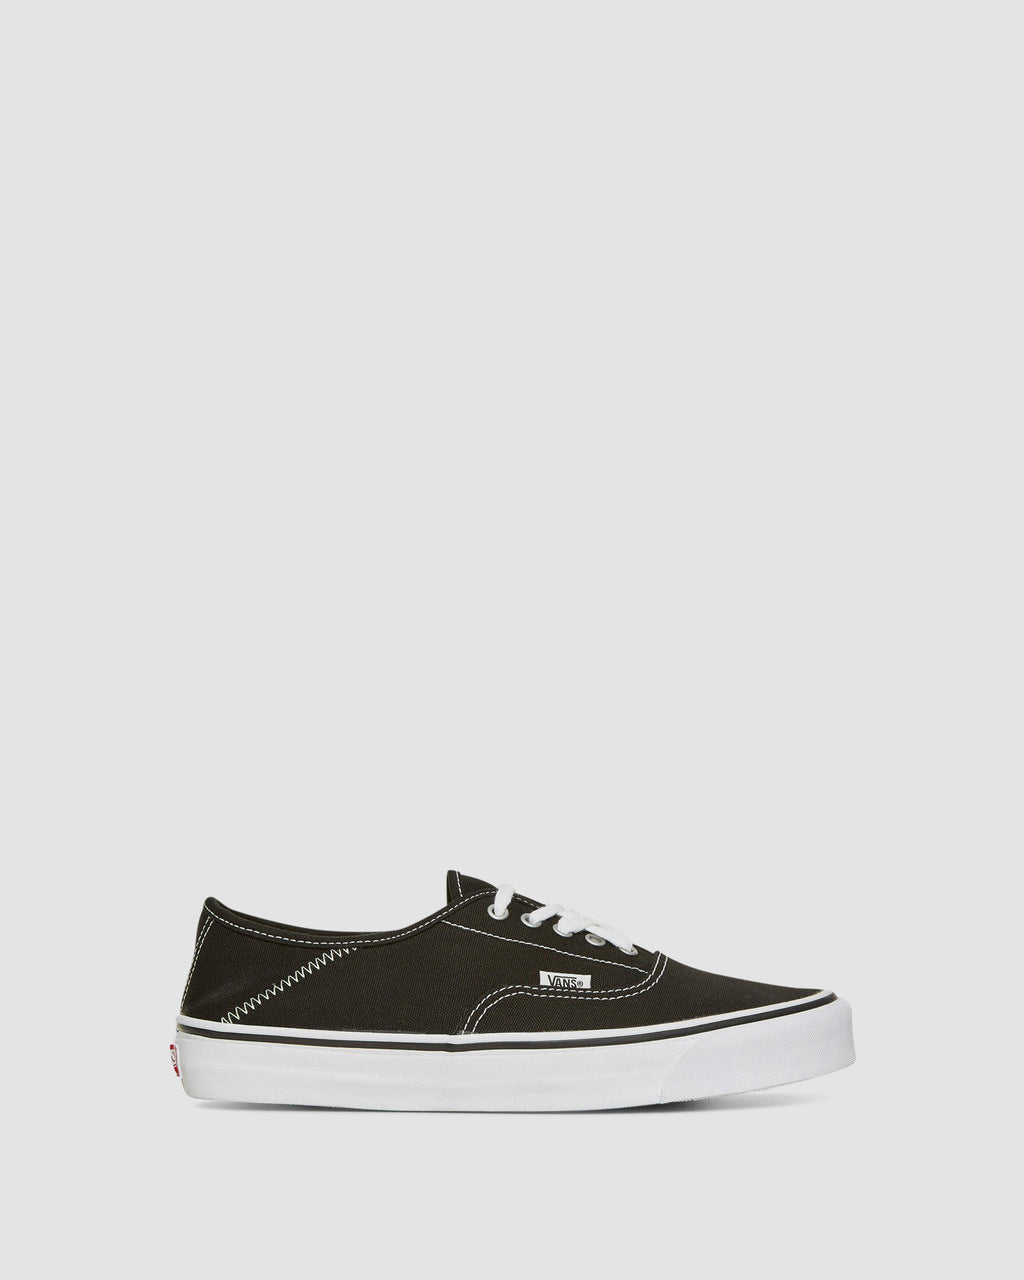 VANS OG STYLE 43 AUTHENTIC FOLD DOWN BLACK